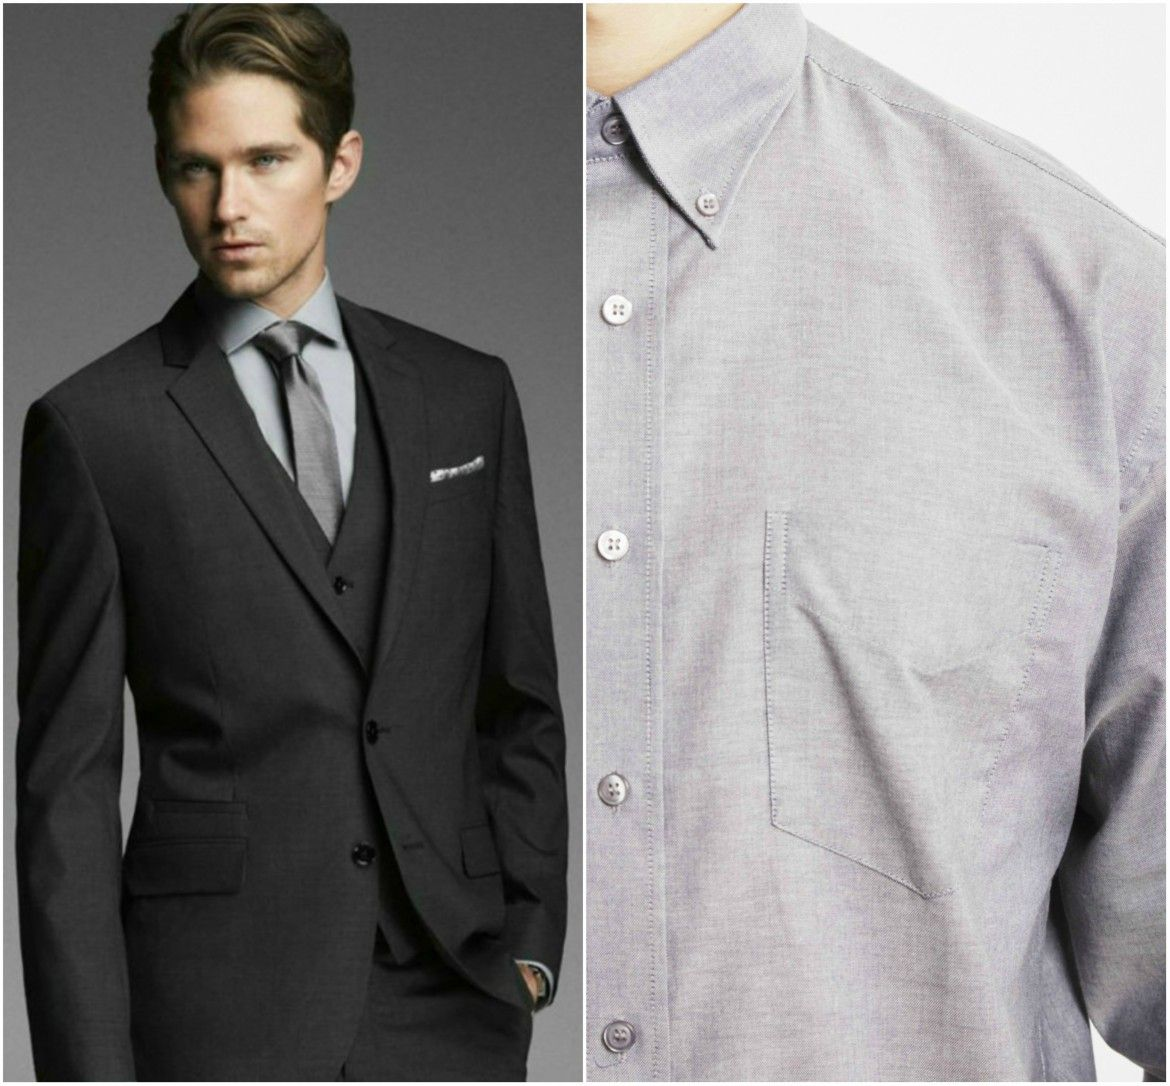 Shirt and Tie Combinations with a Black Suit | The Idle Man